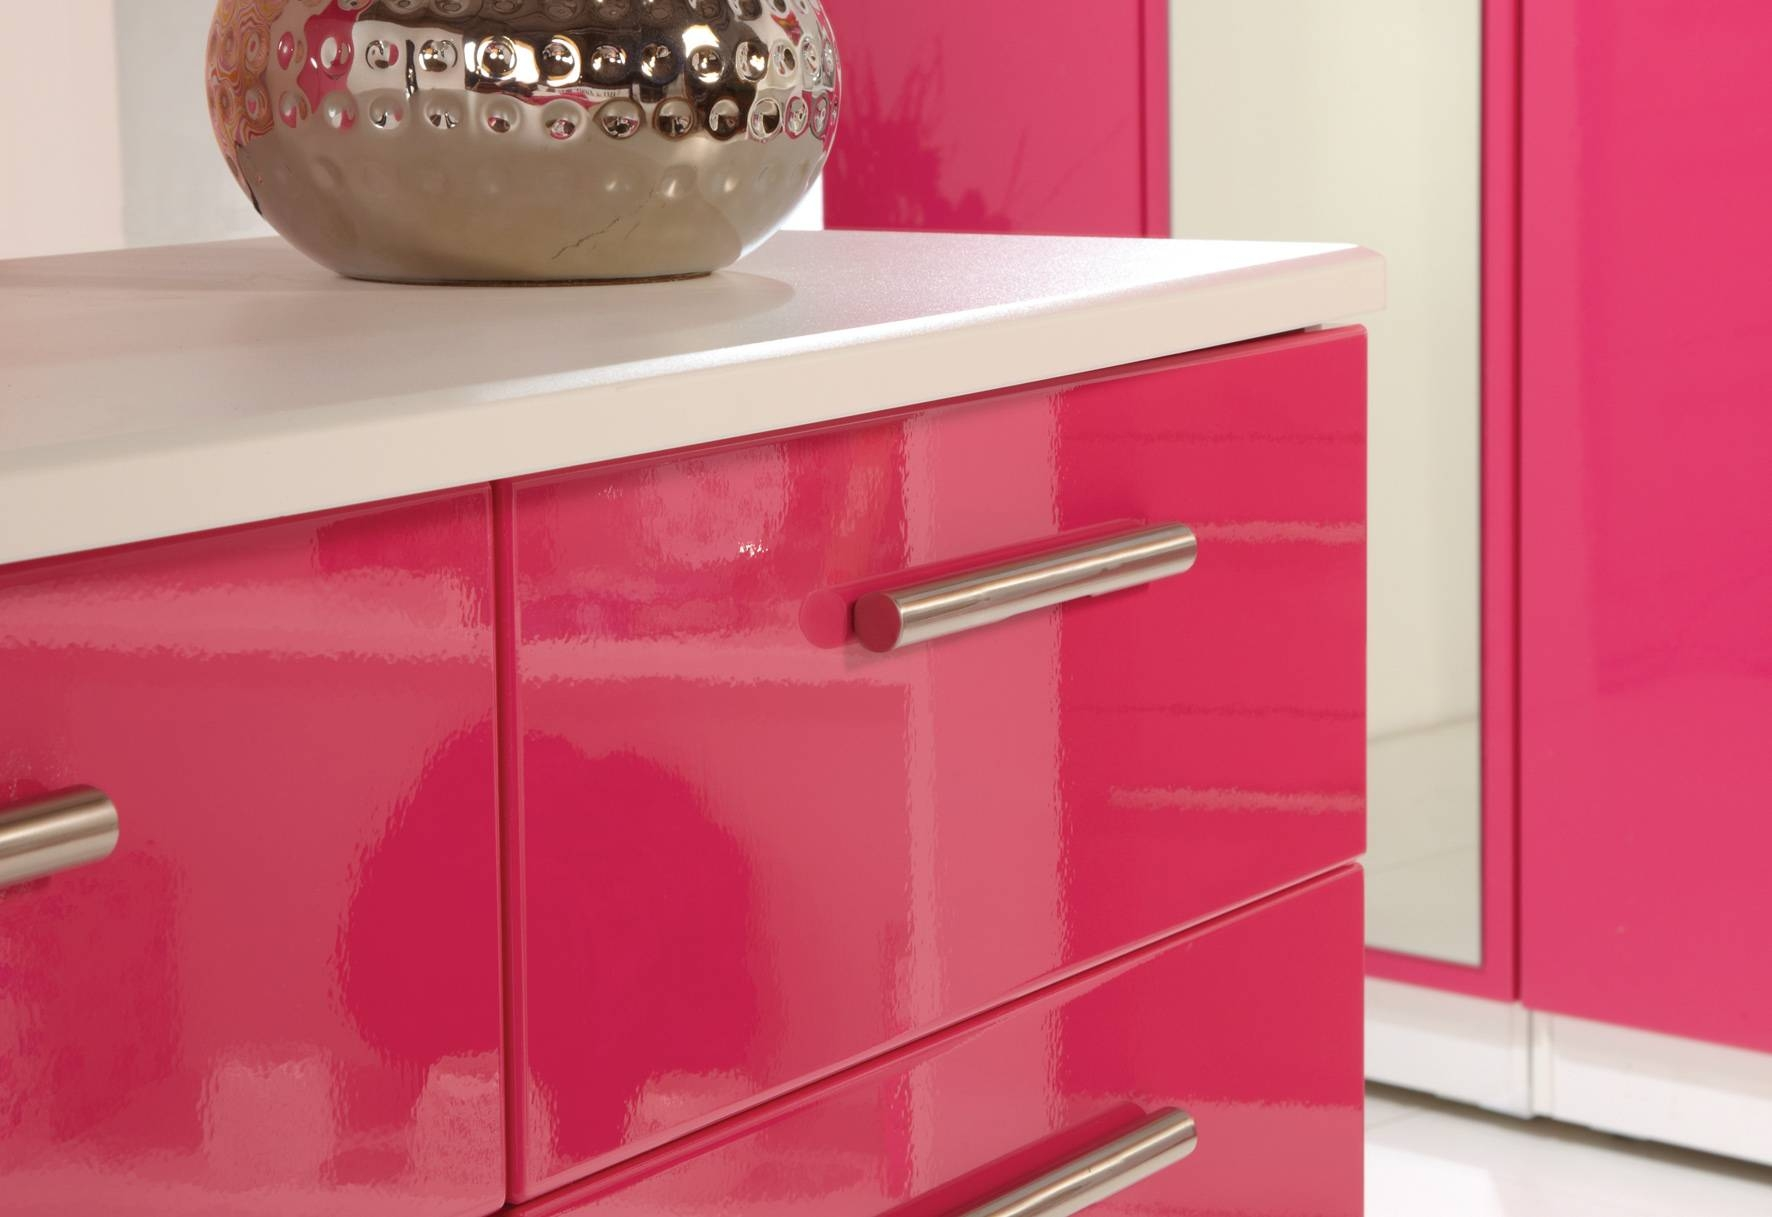 Kensington Bedroom | Lifestyle Furniture throughout Pink High Gloss Wardrobes (Image 10 of 15)